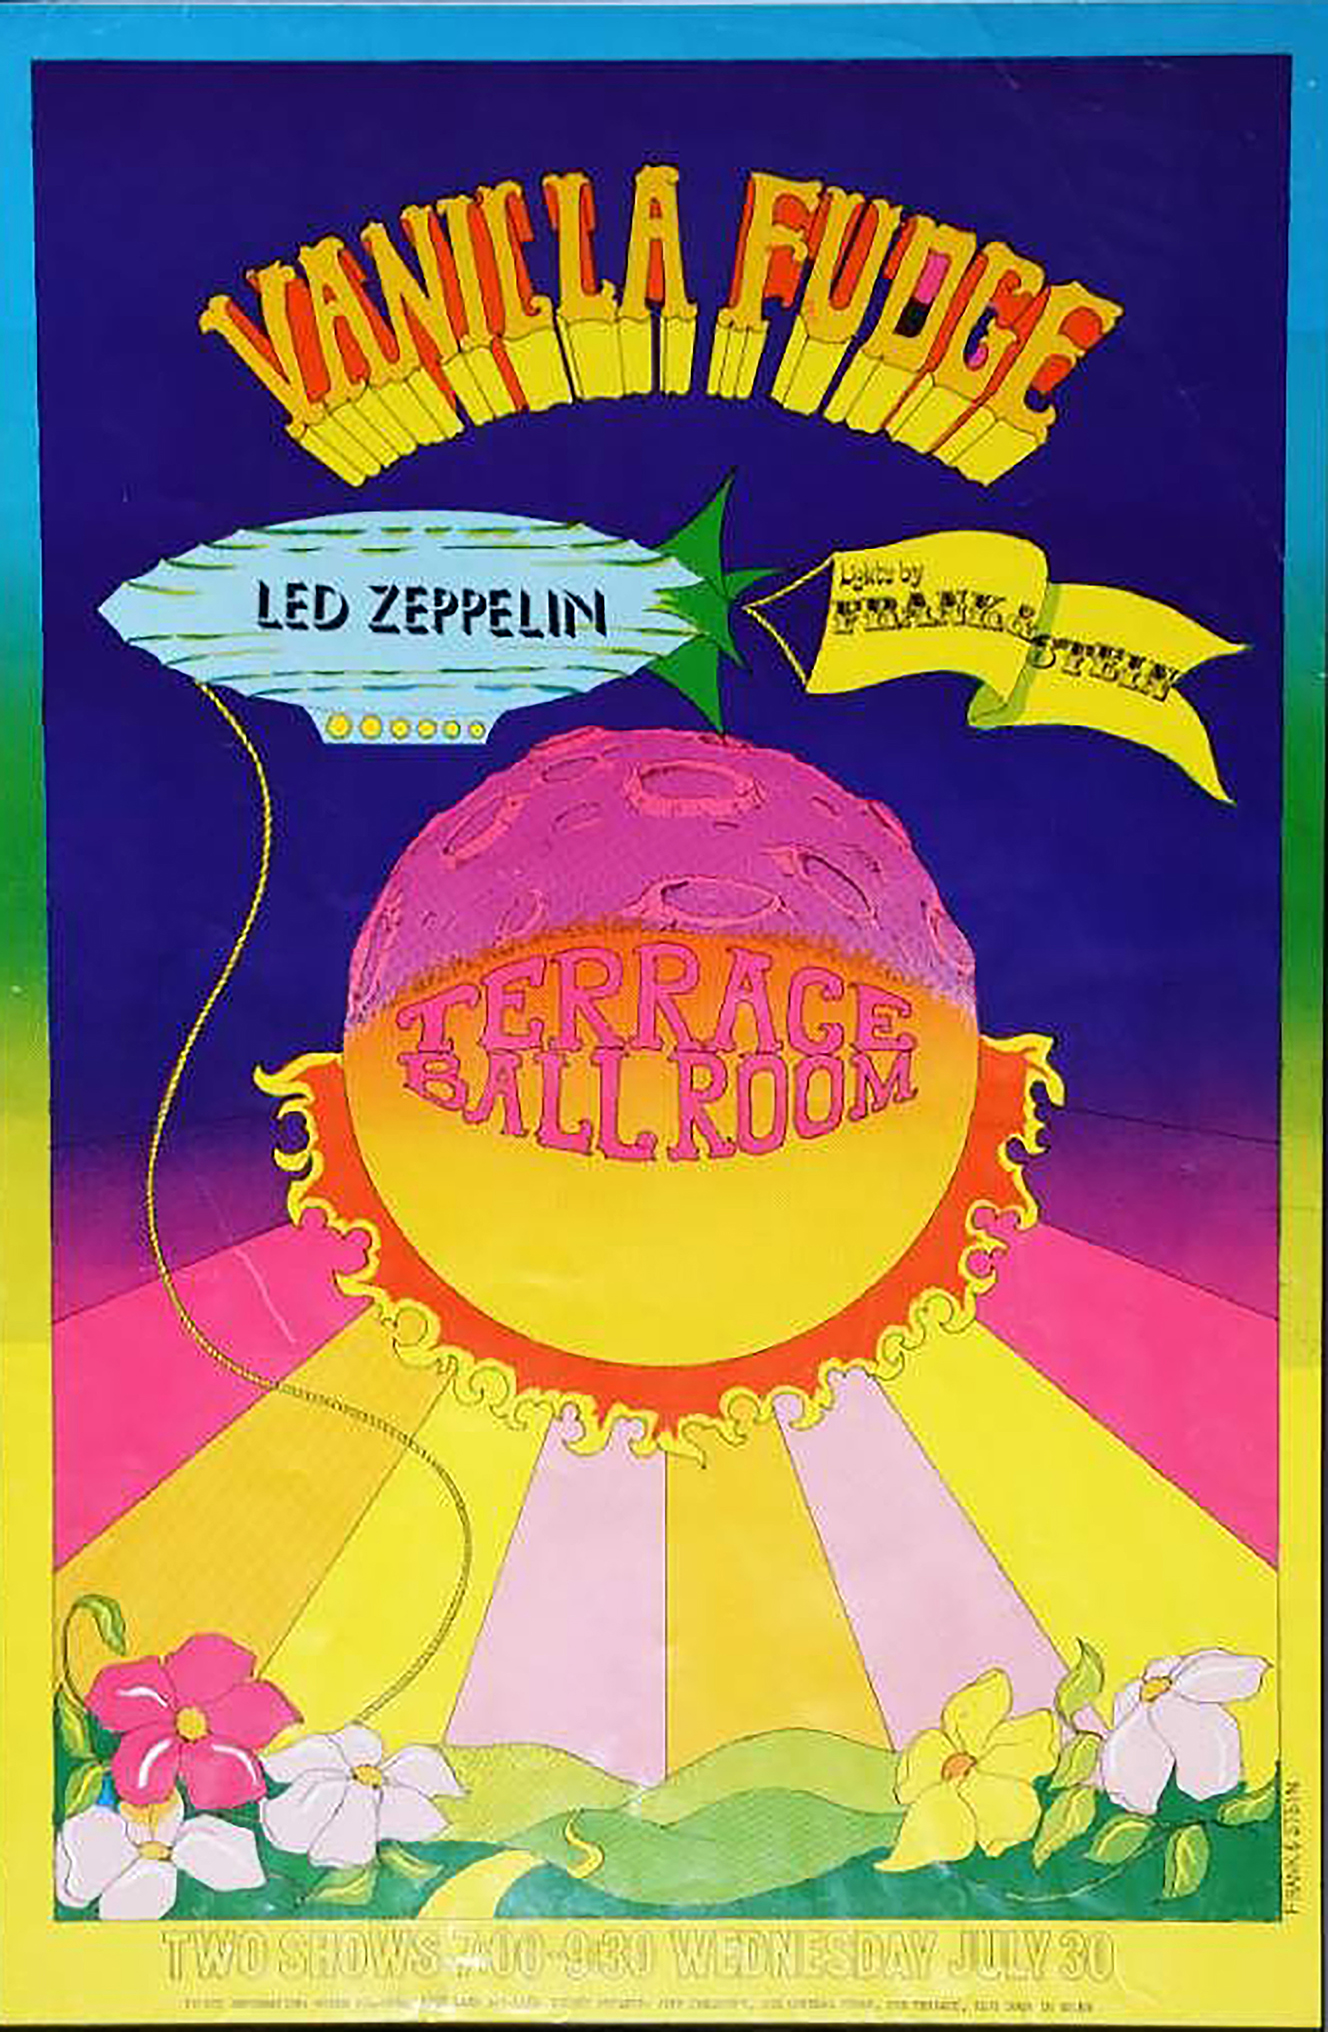 Mussell is seeking this Zeppelin concert poster in any condition from the bands 1969 appearance at the Terrace Ballroom in Salt Lake City, Utah. If you have this or other concert posters from the area contact Mussell at 515-707-7250 or srmussell@me.com